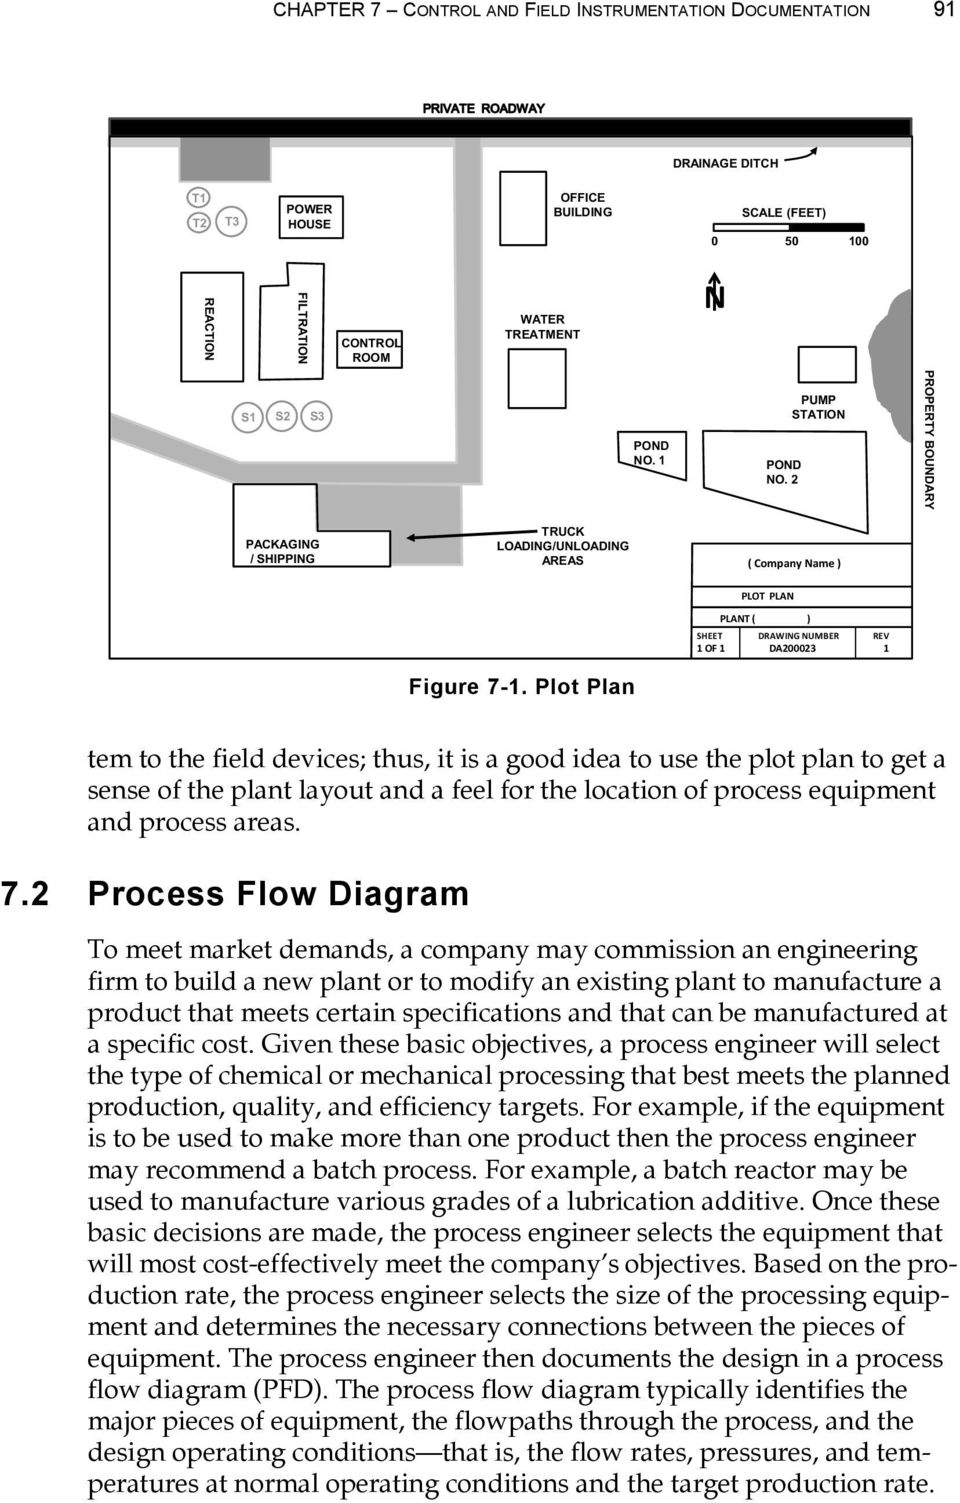 7 Control And Field Instrumentation Documentation Pdf Process Flow Diagram Refinery Plant Plot Plan Tem To The Devices Thus It Is A Good Idea